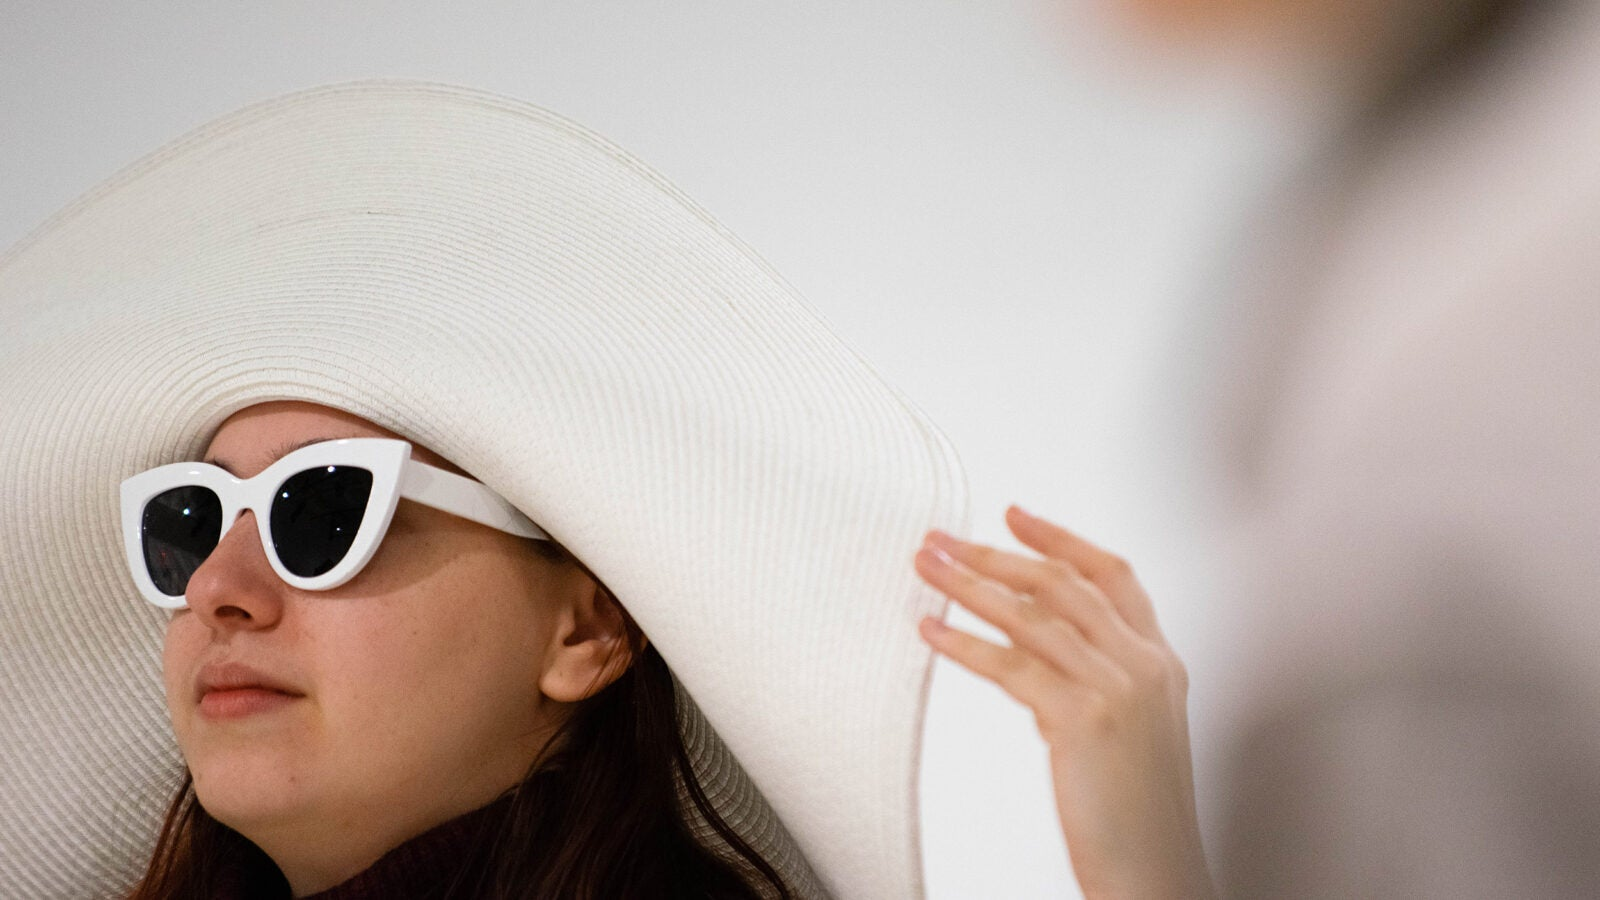 Allie Jeffay wears a large, white sun hat and sunglasses.